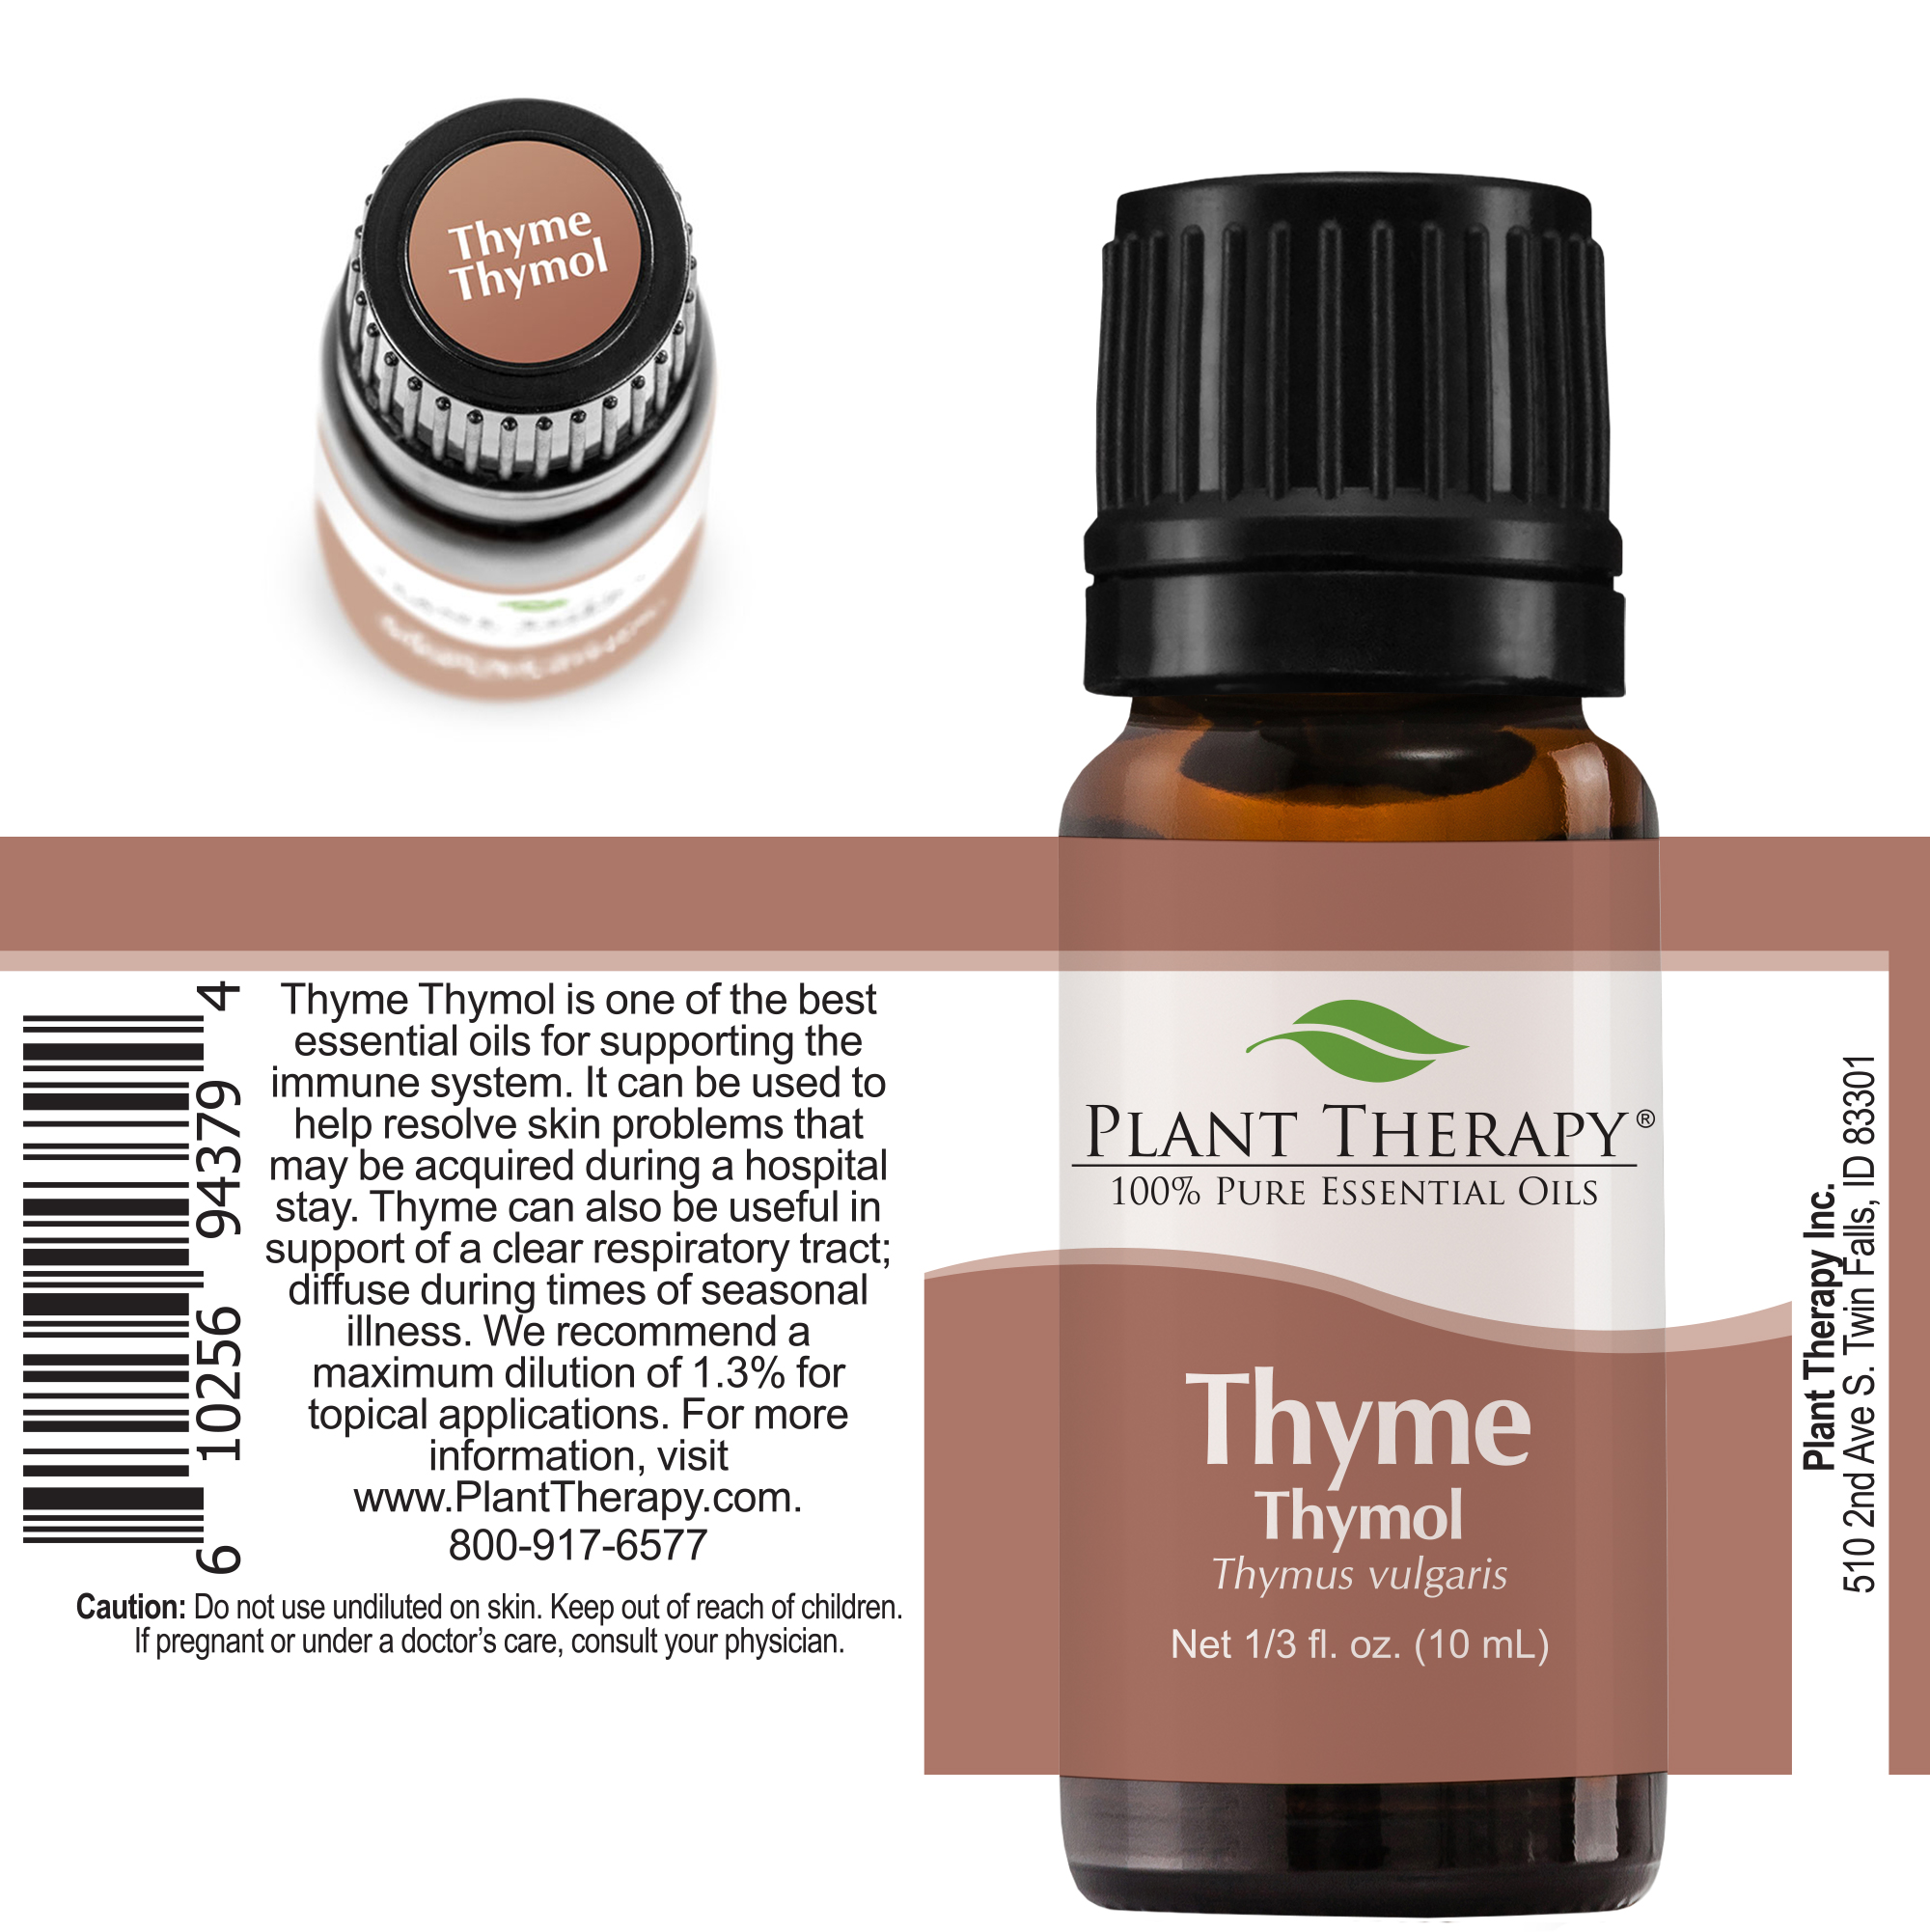 Plant-Therapy-Thyme-Thymol-Essential-Oil-100-Pure-Undiluted thumbnail 6